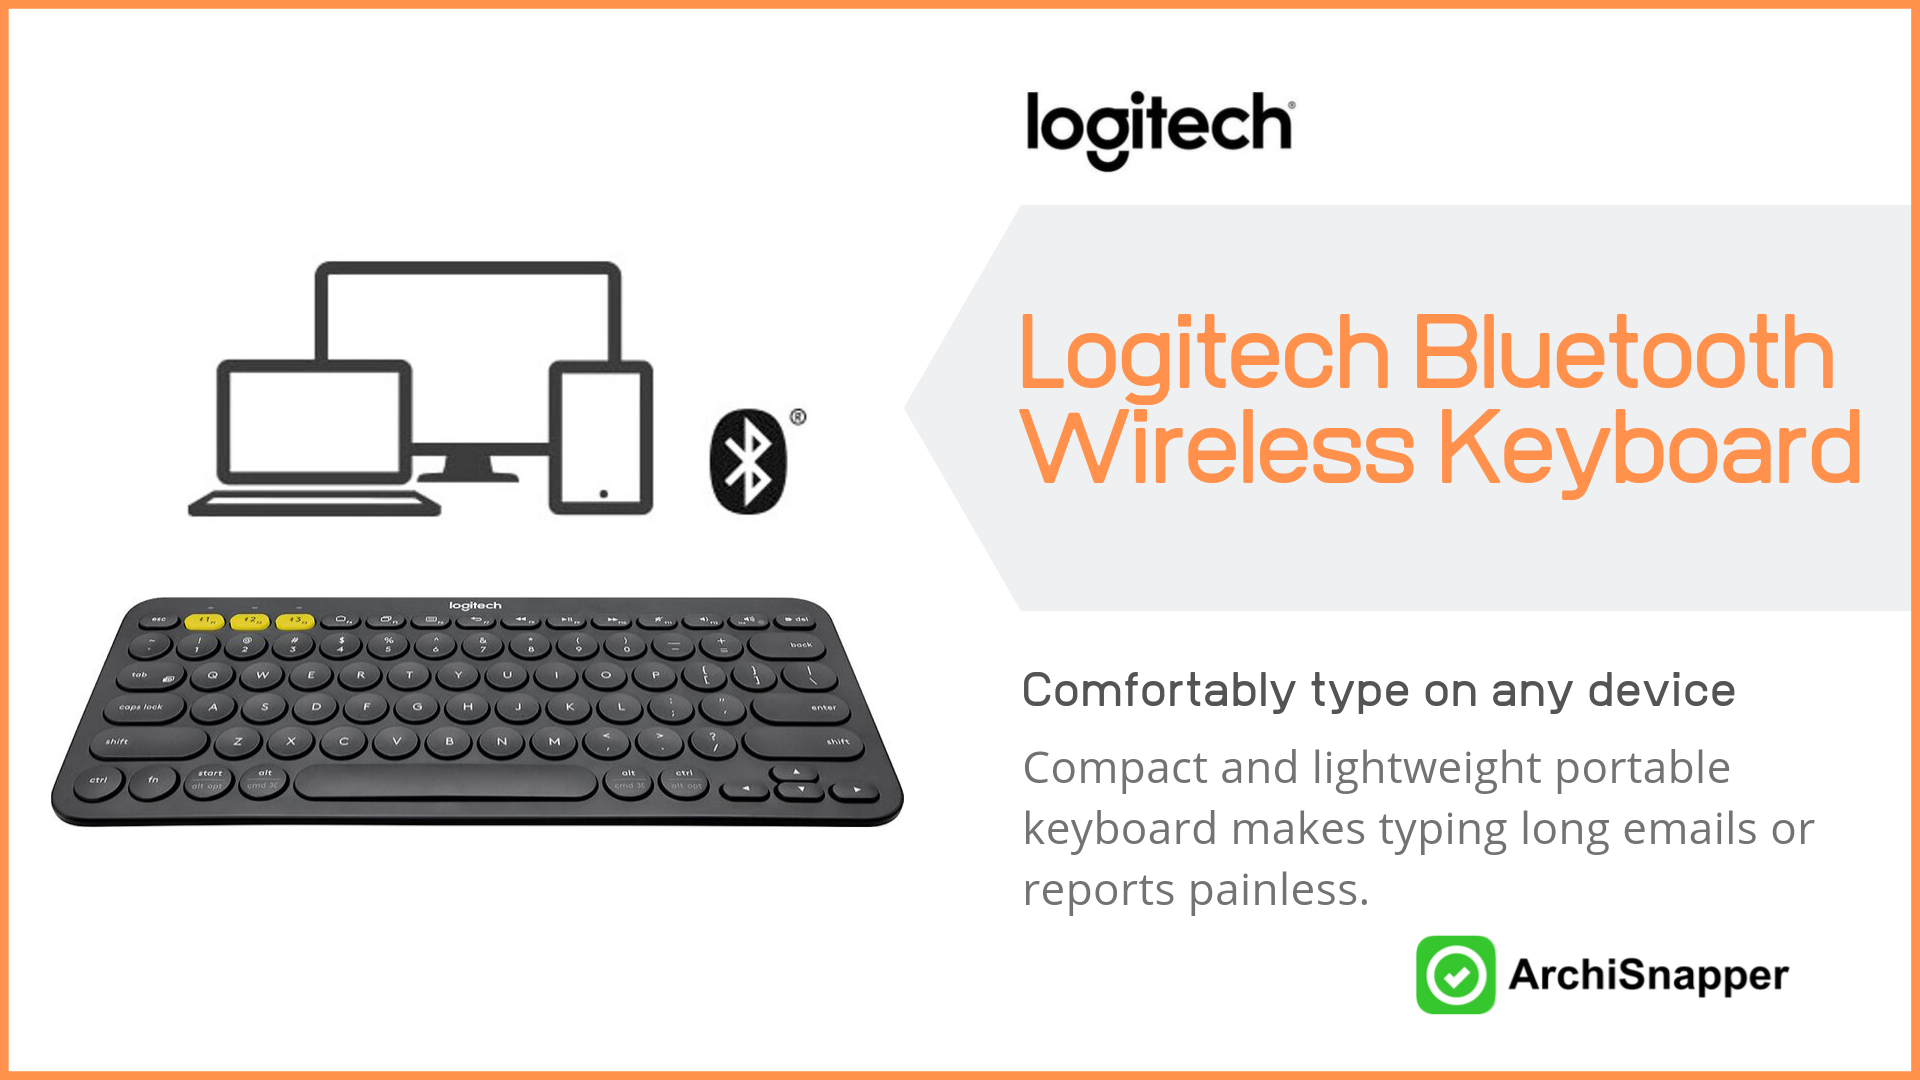 Logitech K380 Bluetooth Wireless Keyboard | Top Tech for Architects Presented by Archisnapper.